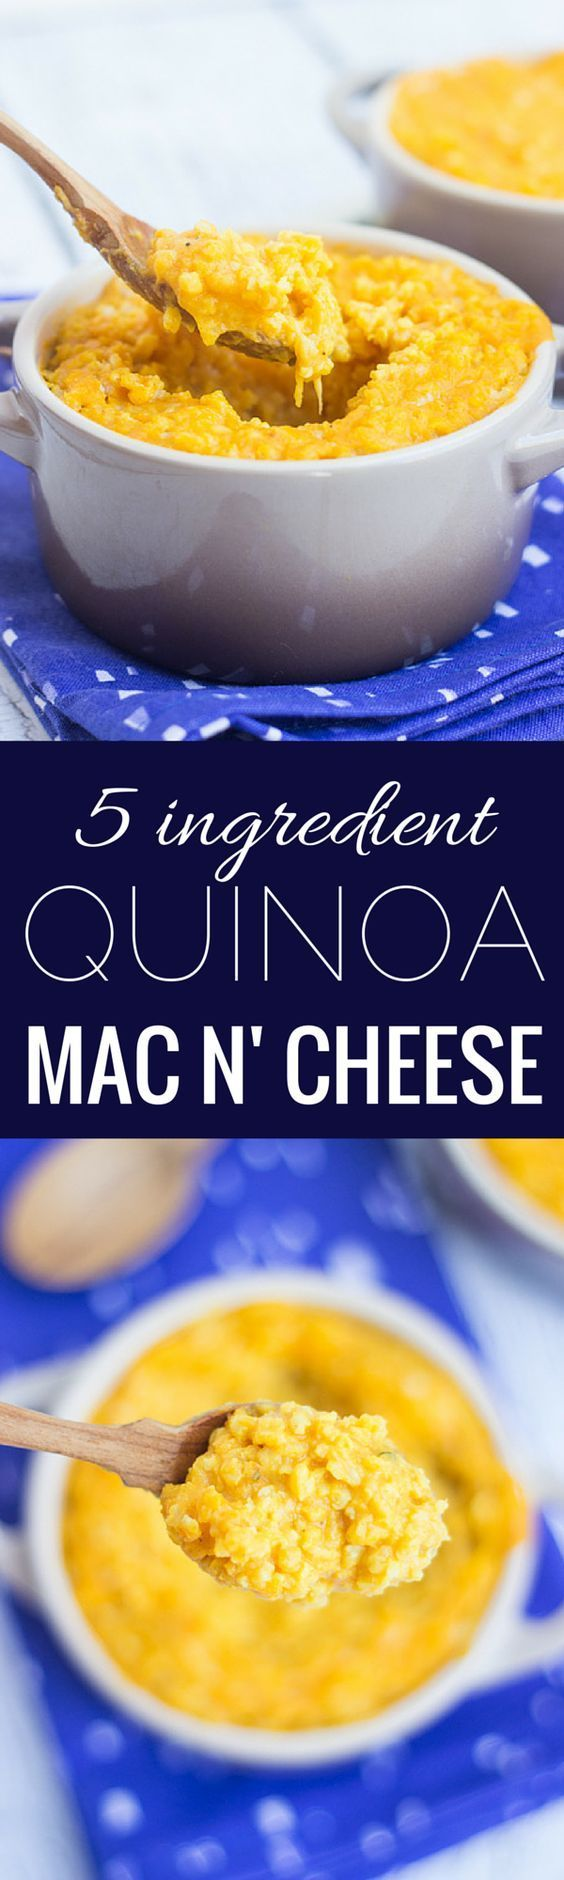 Comfort-food is at the top of every college kid's list, but in order to stay healthy try this recipe that substitutes quinoa for pasta. Top saved: 5-ingredient Quinoa Mac and Cheese.